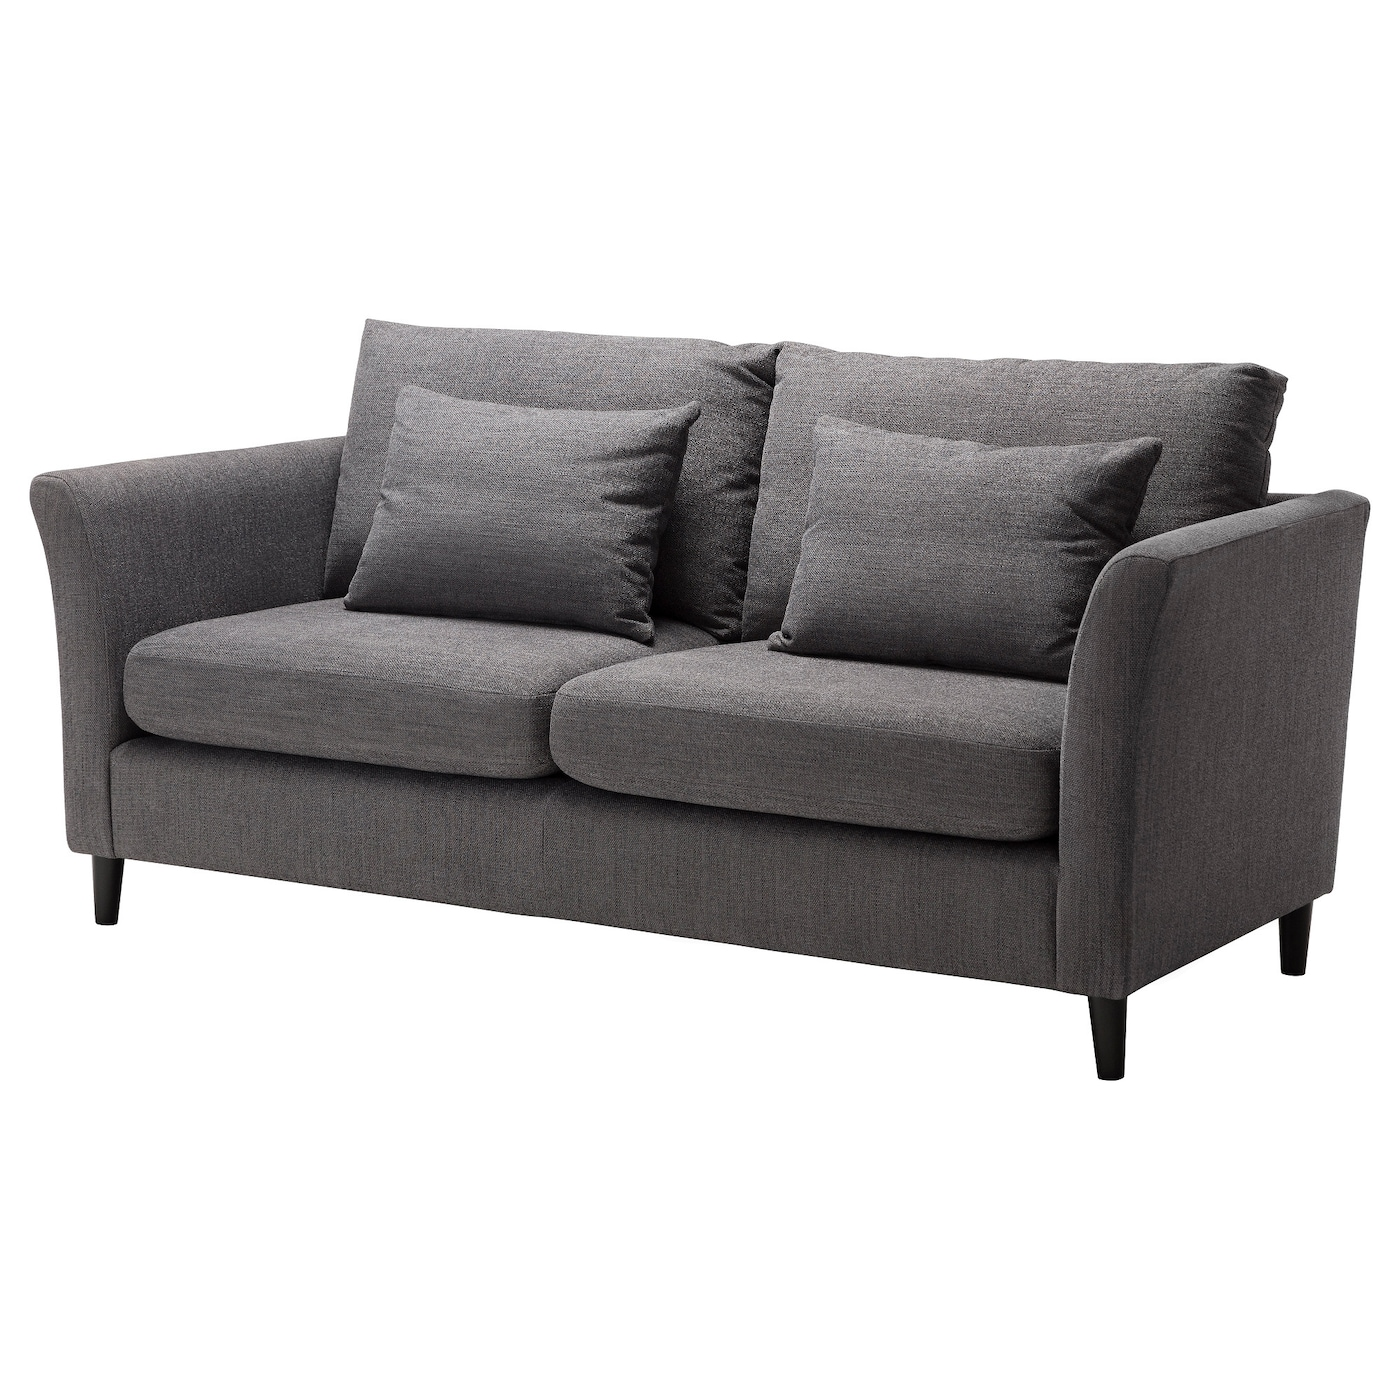 IKEA BANKERYD three-seat sofa